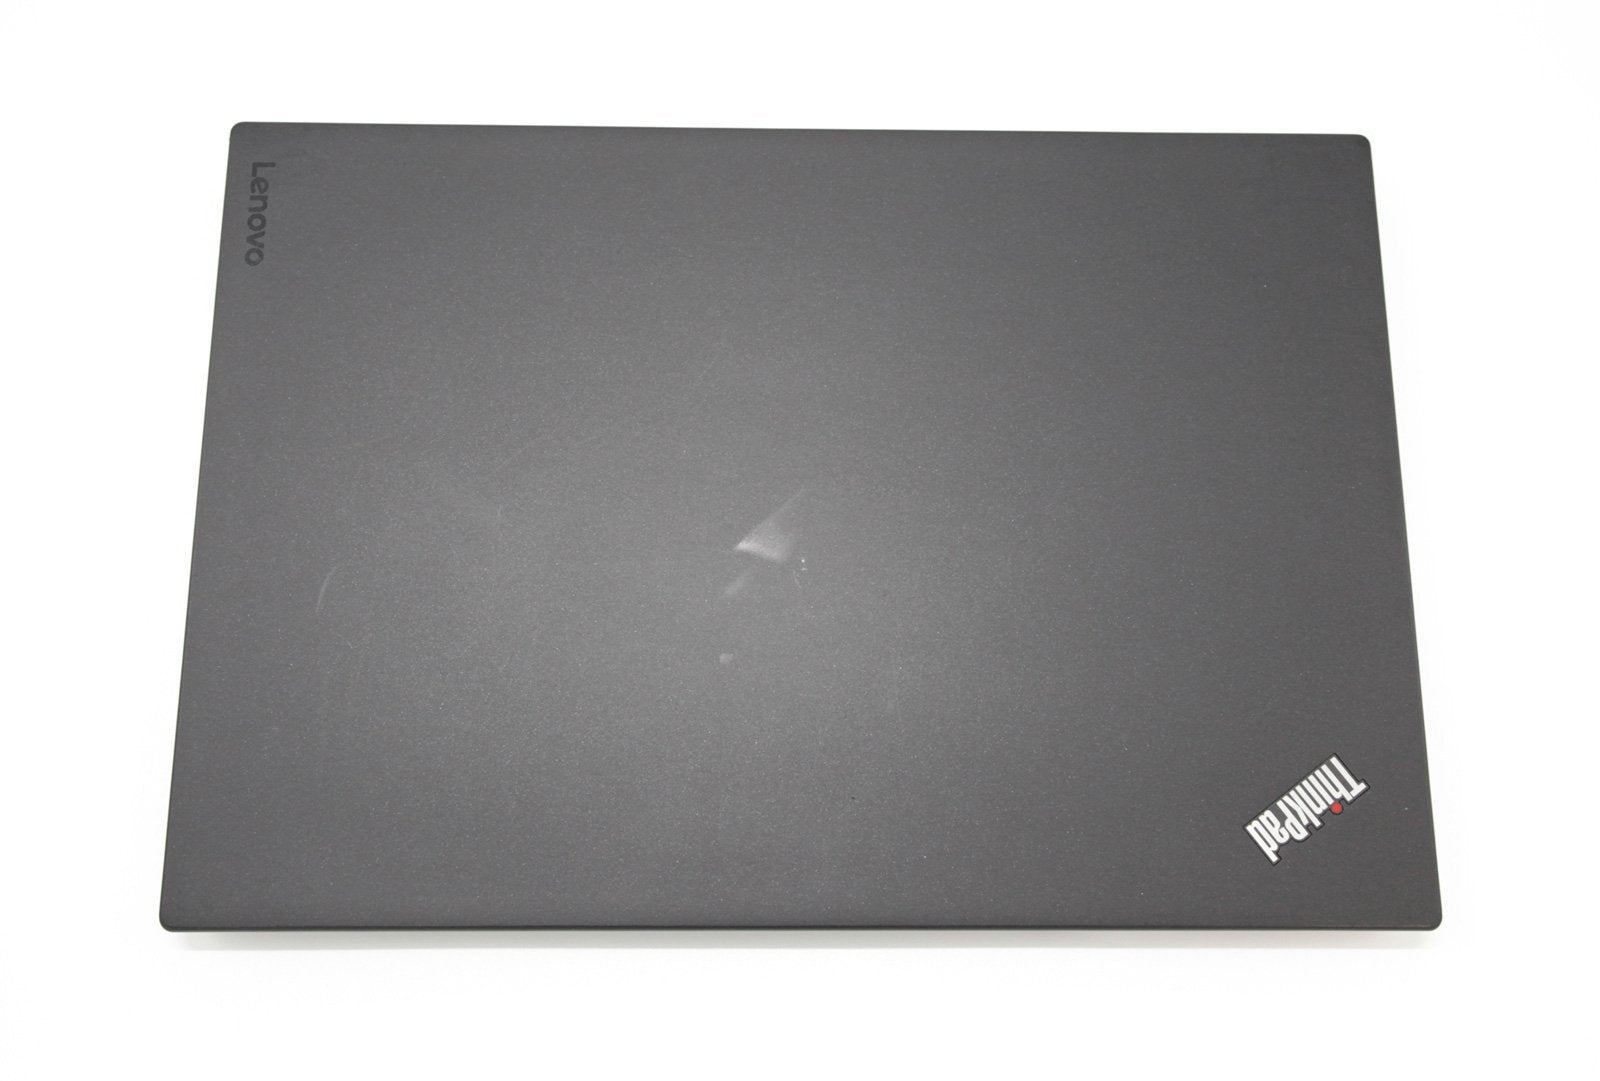 Lenovo Thinkpad T470s IPS Laptop: 240GB SSD Core i5, 8GB, Warranty VAT - CruiseTech